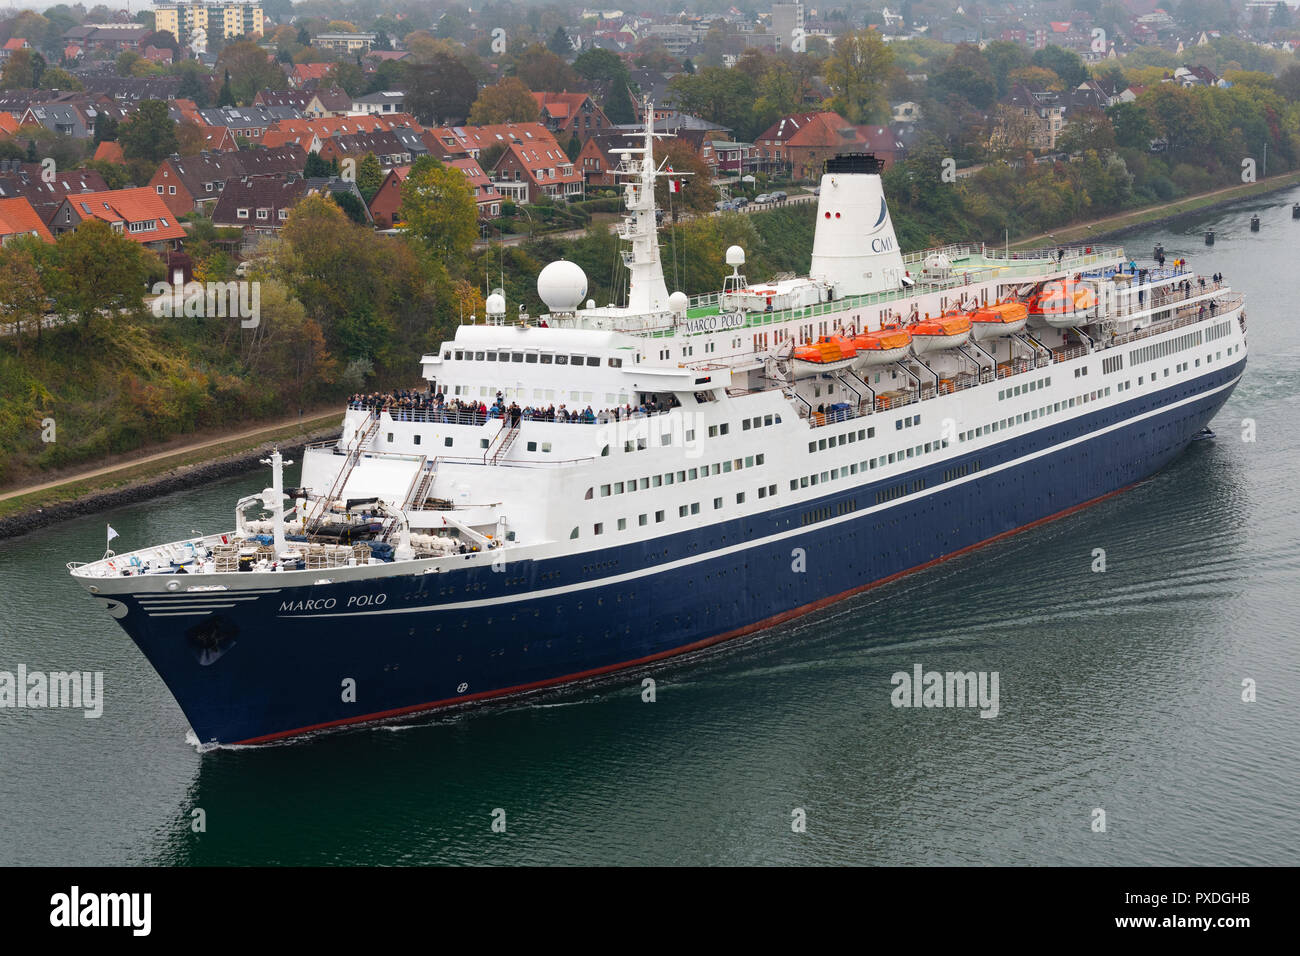 Cruiseship Marco Polo in the Kiel canal - Stock Image